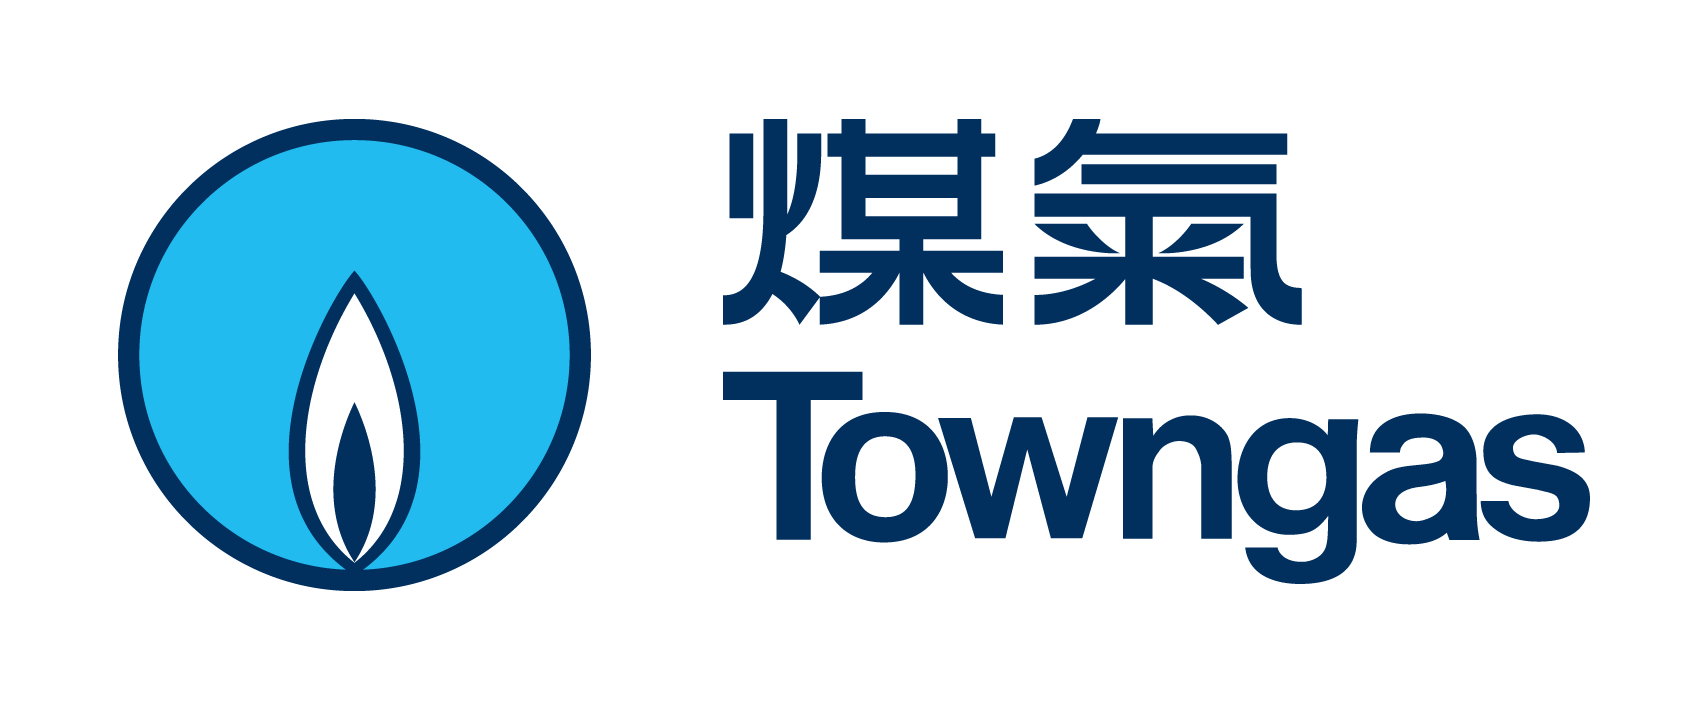 Towngas Engineering Academy, The Hong Kong and China Gas Company Limited